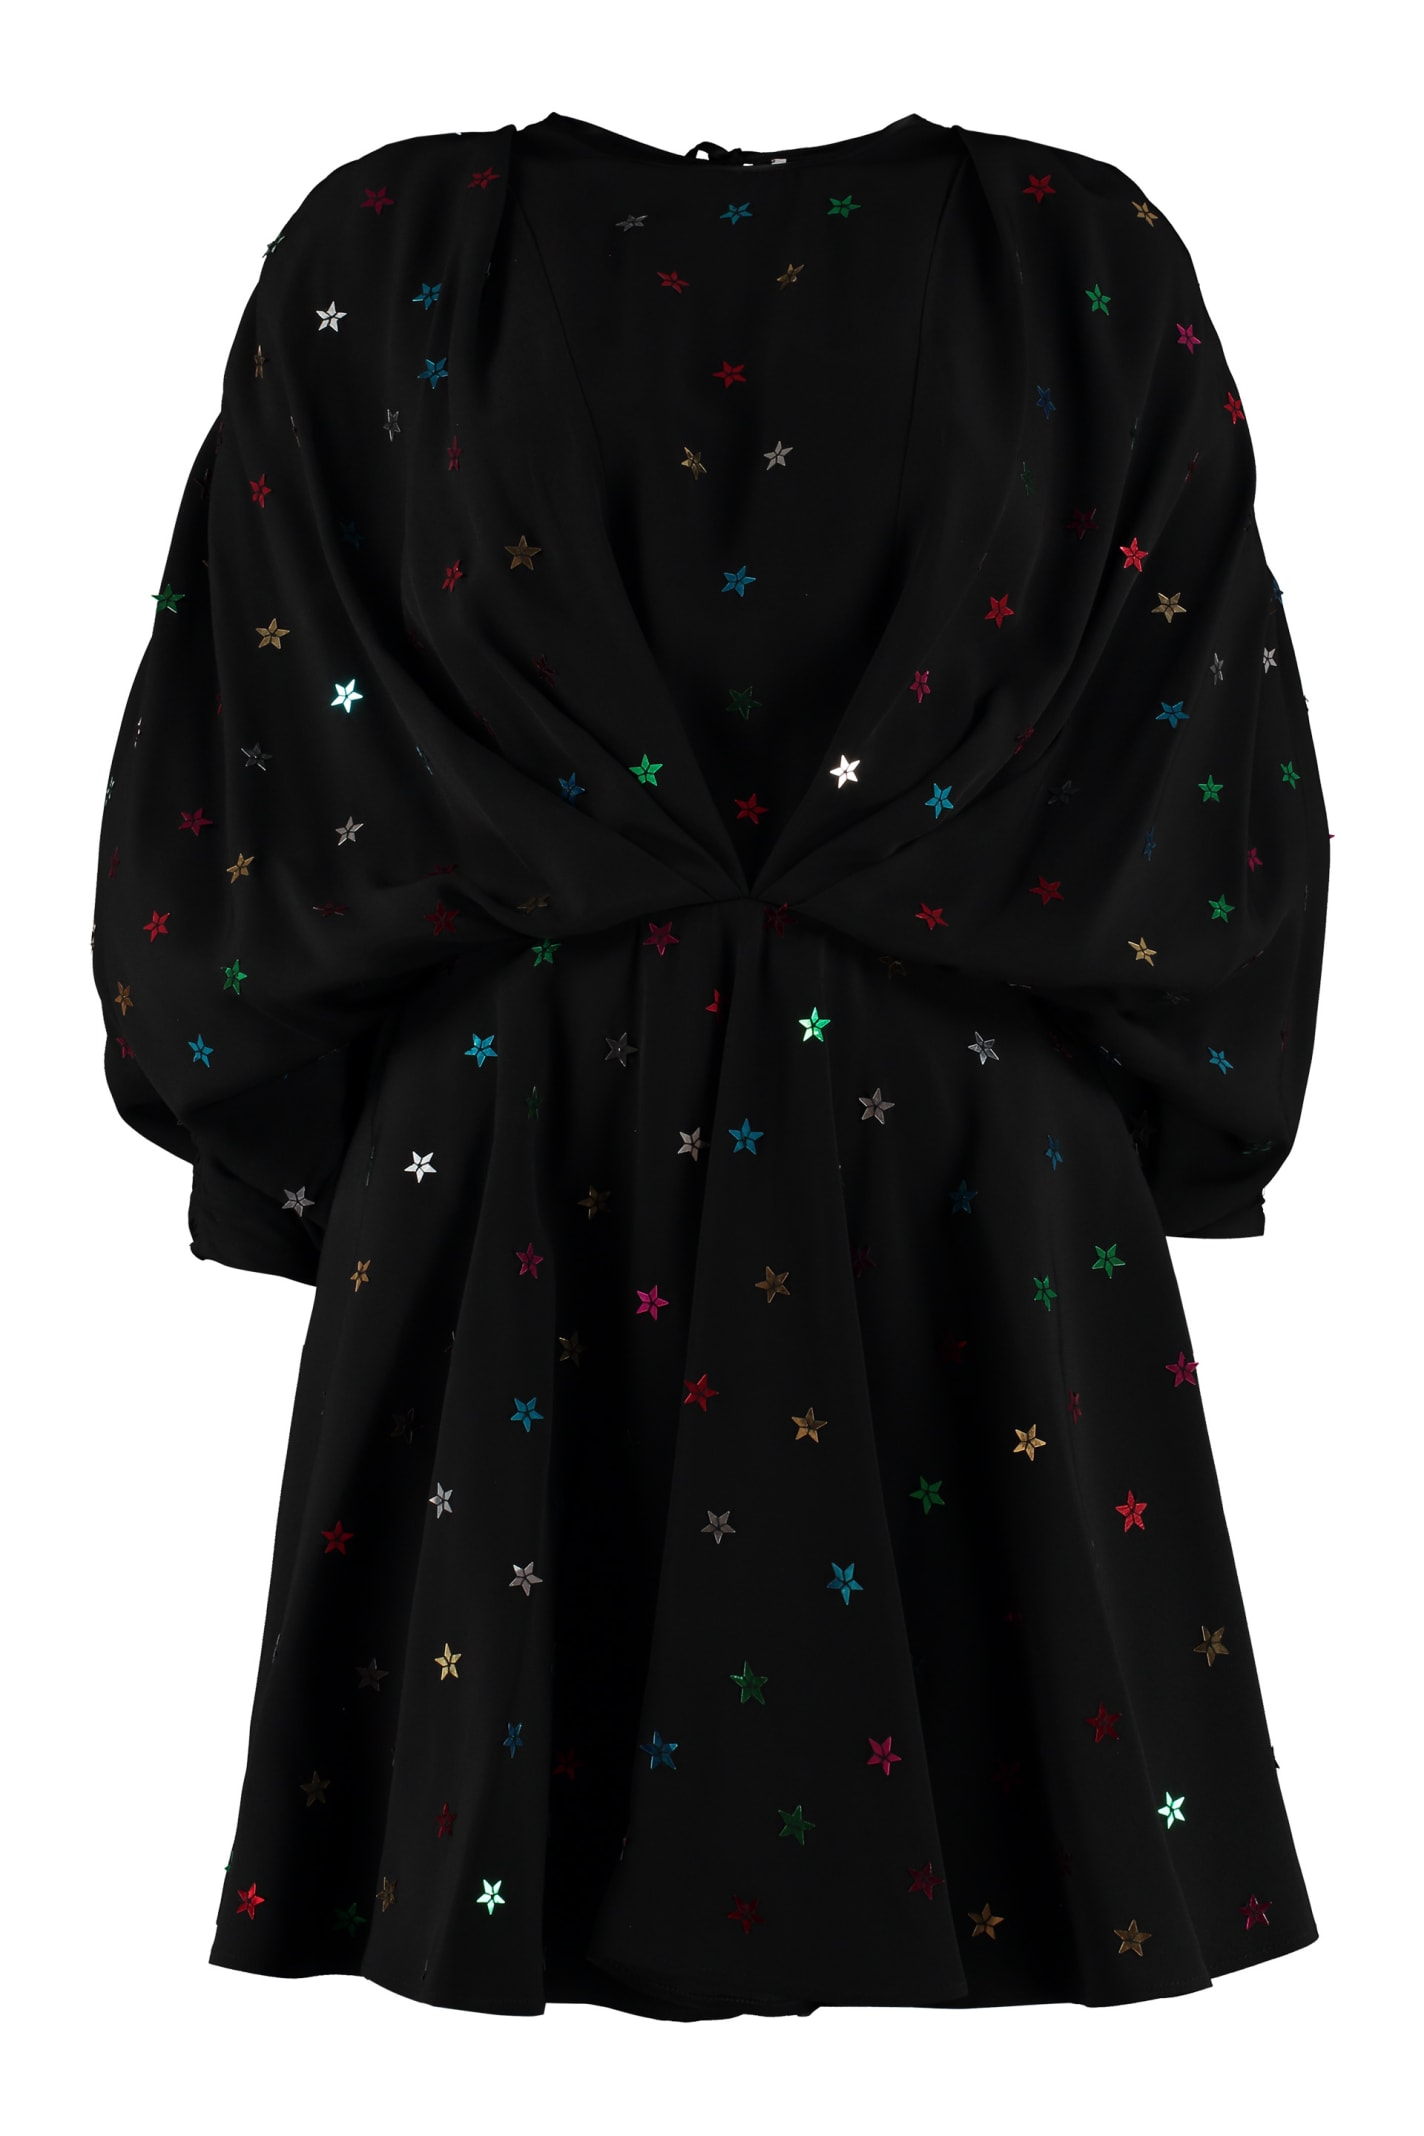 The Attico All Over Star Embroidered Dress